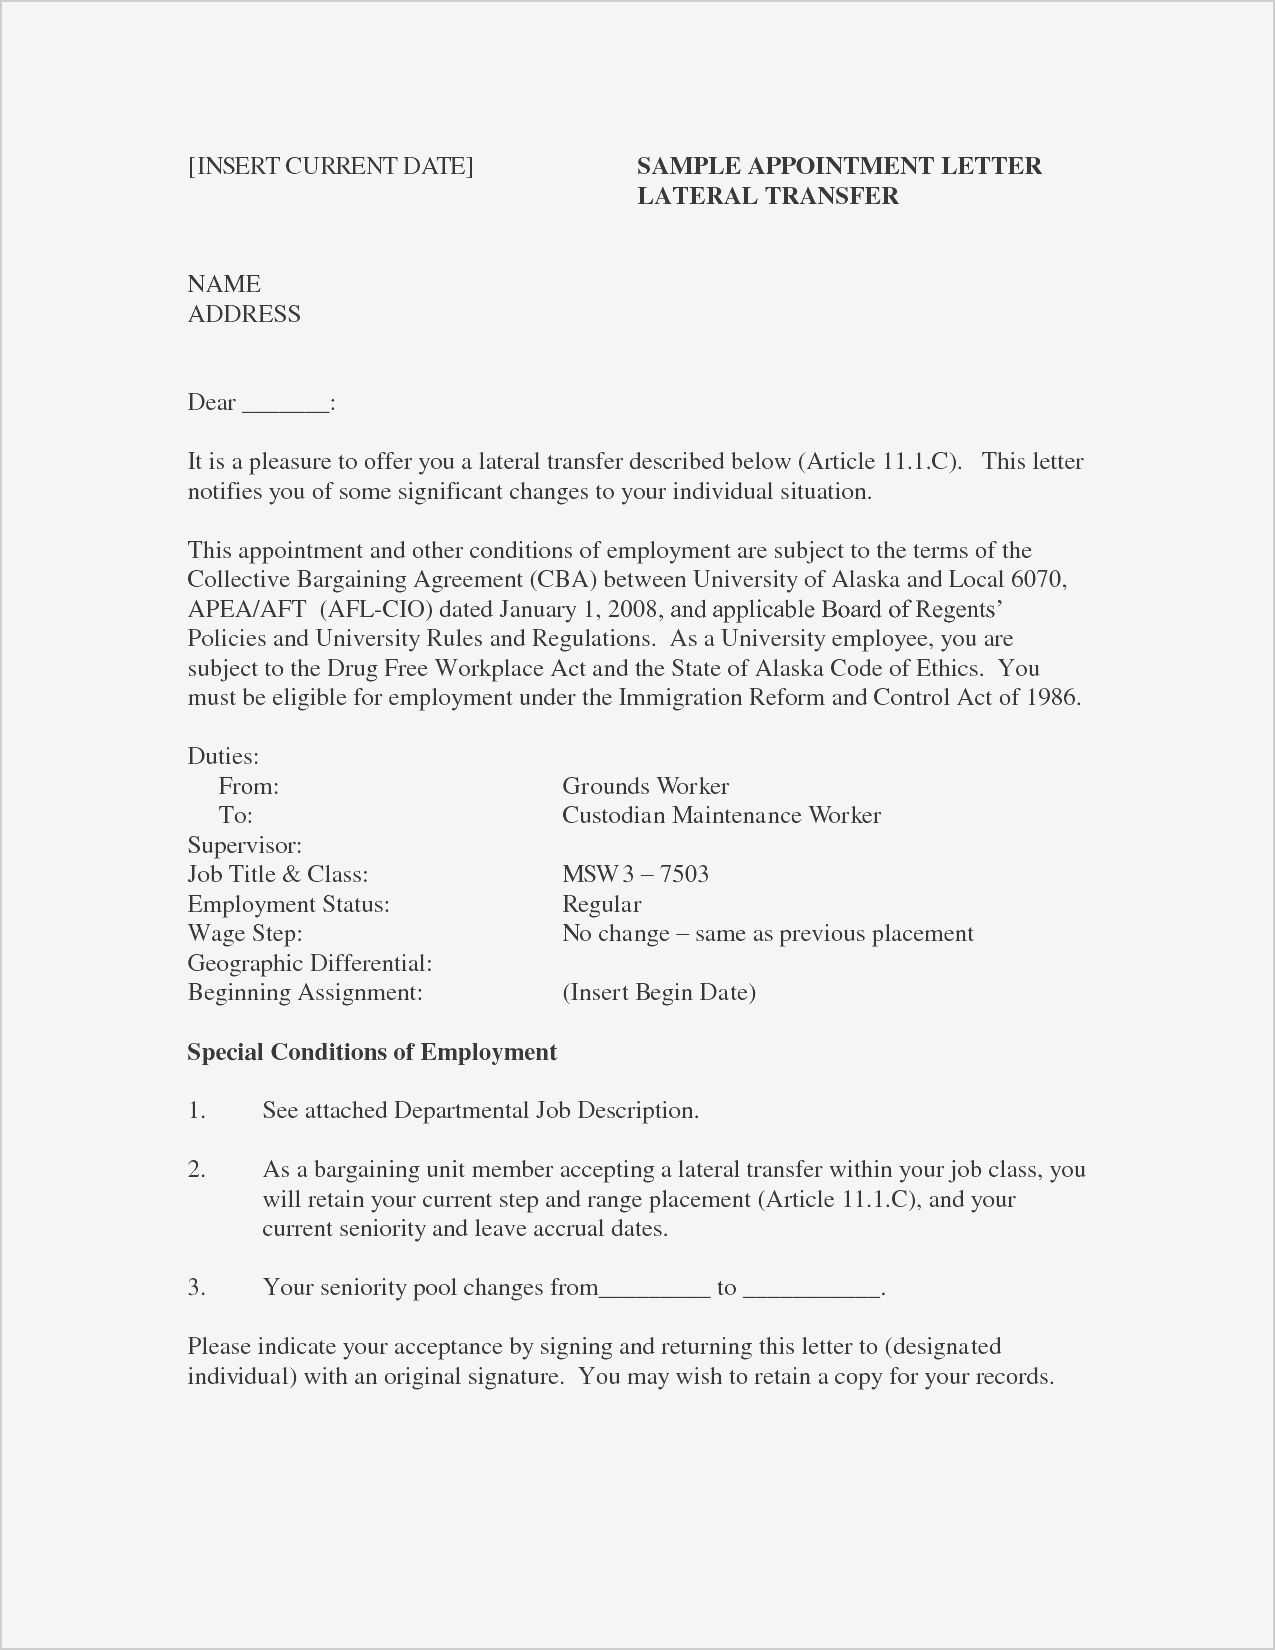 Accountant Resume Examples - Resume Sample for Accounting